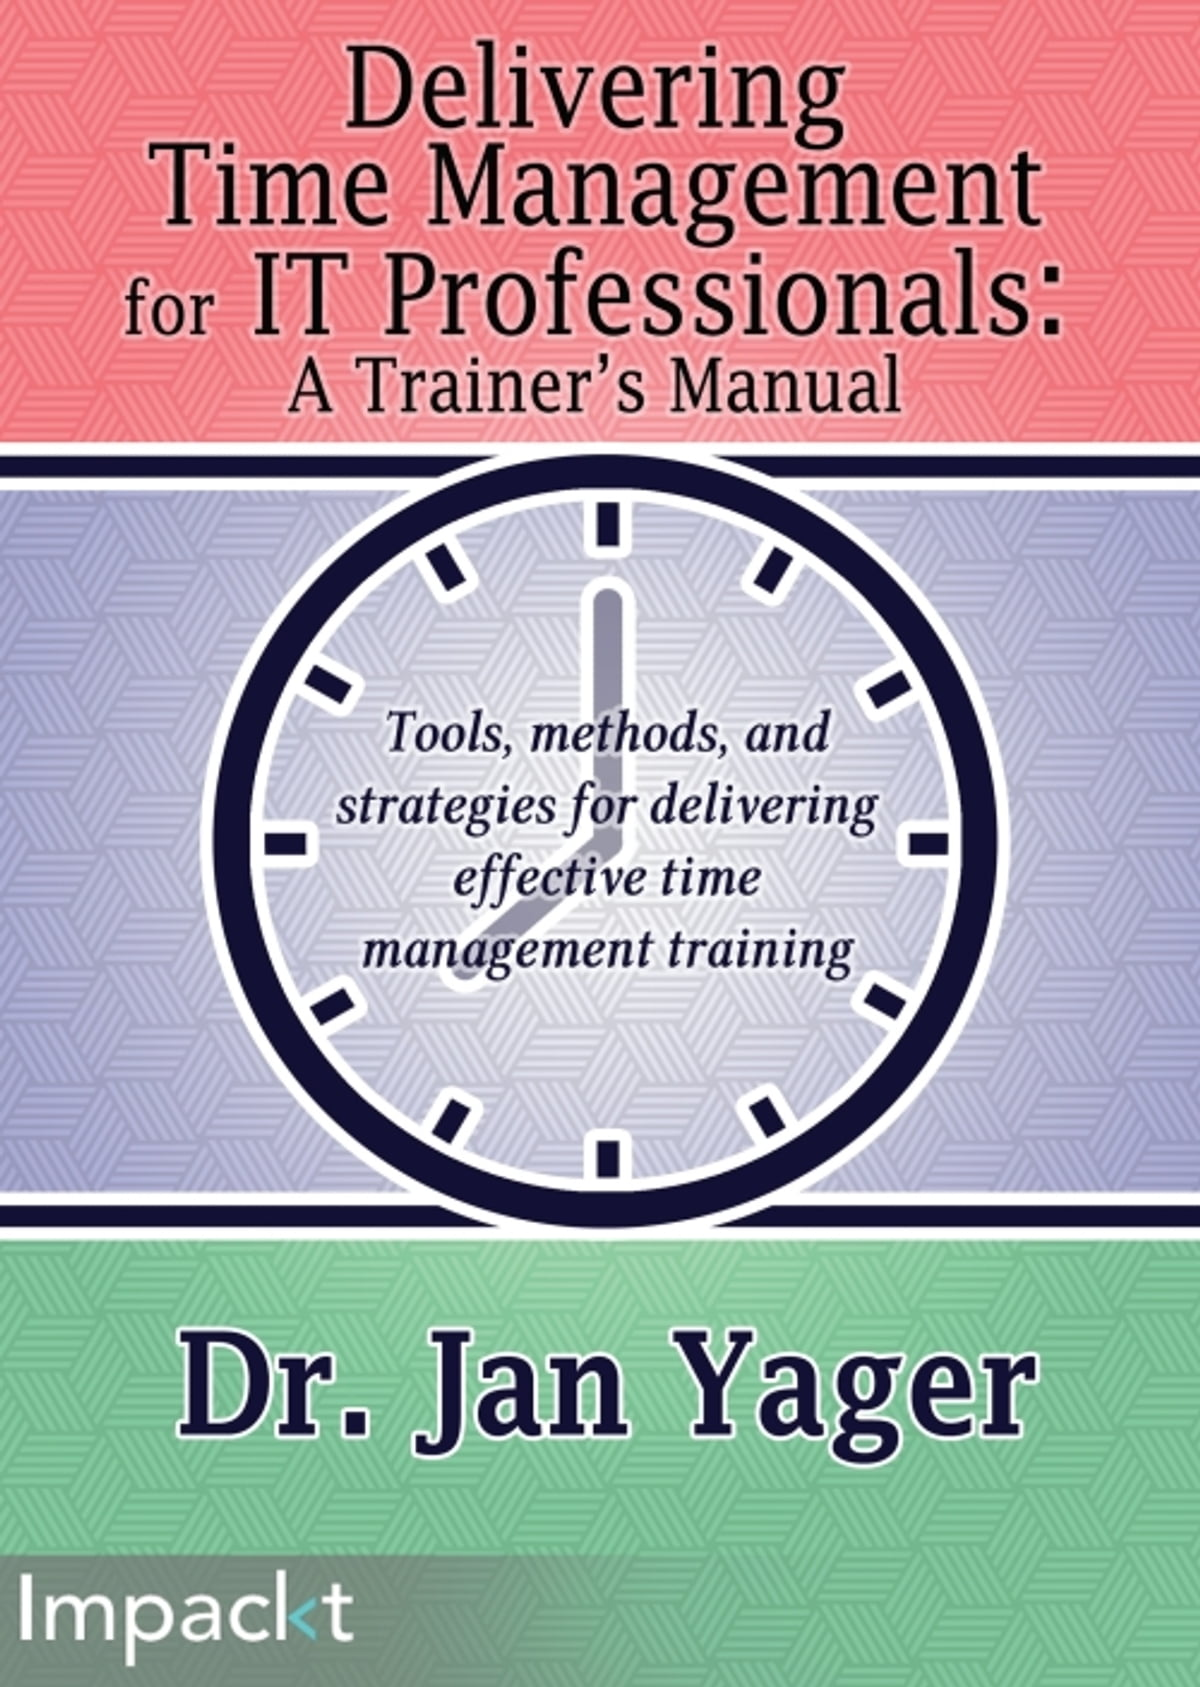 Delivering Time Management for IT Professionals: A Trainer's Manual eBook  by Dr. Jan Yager | Rakuten Kobo